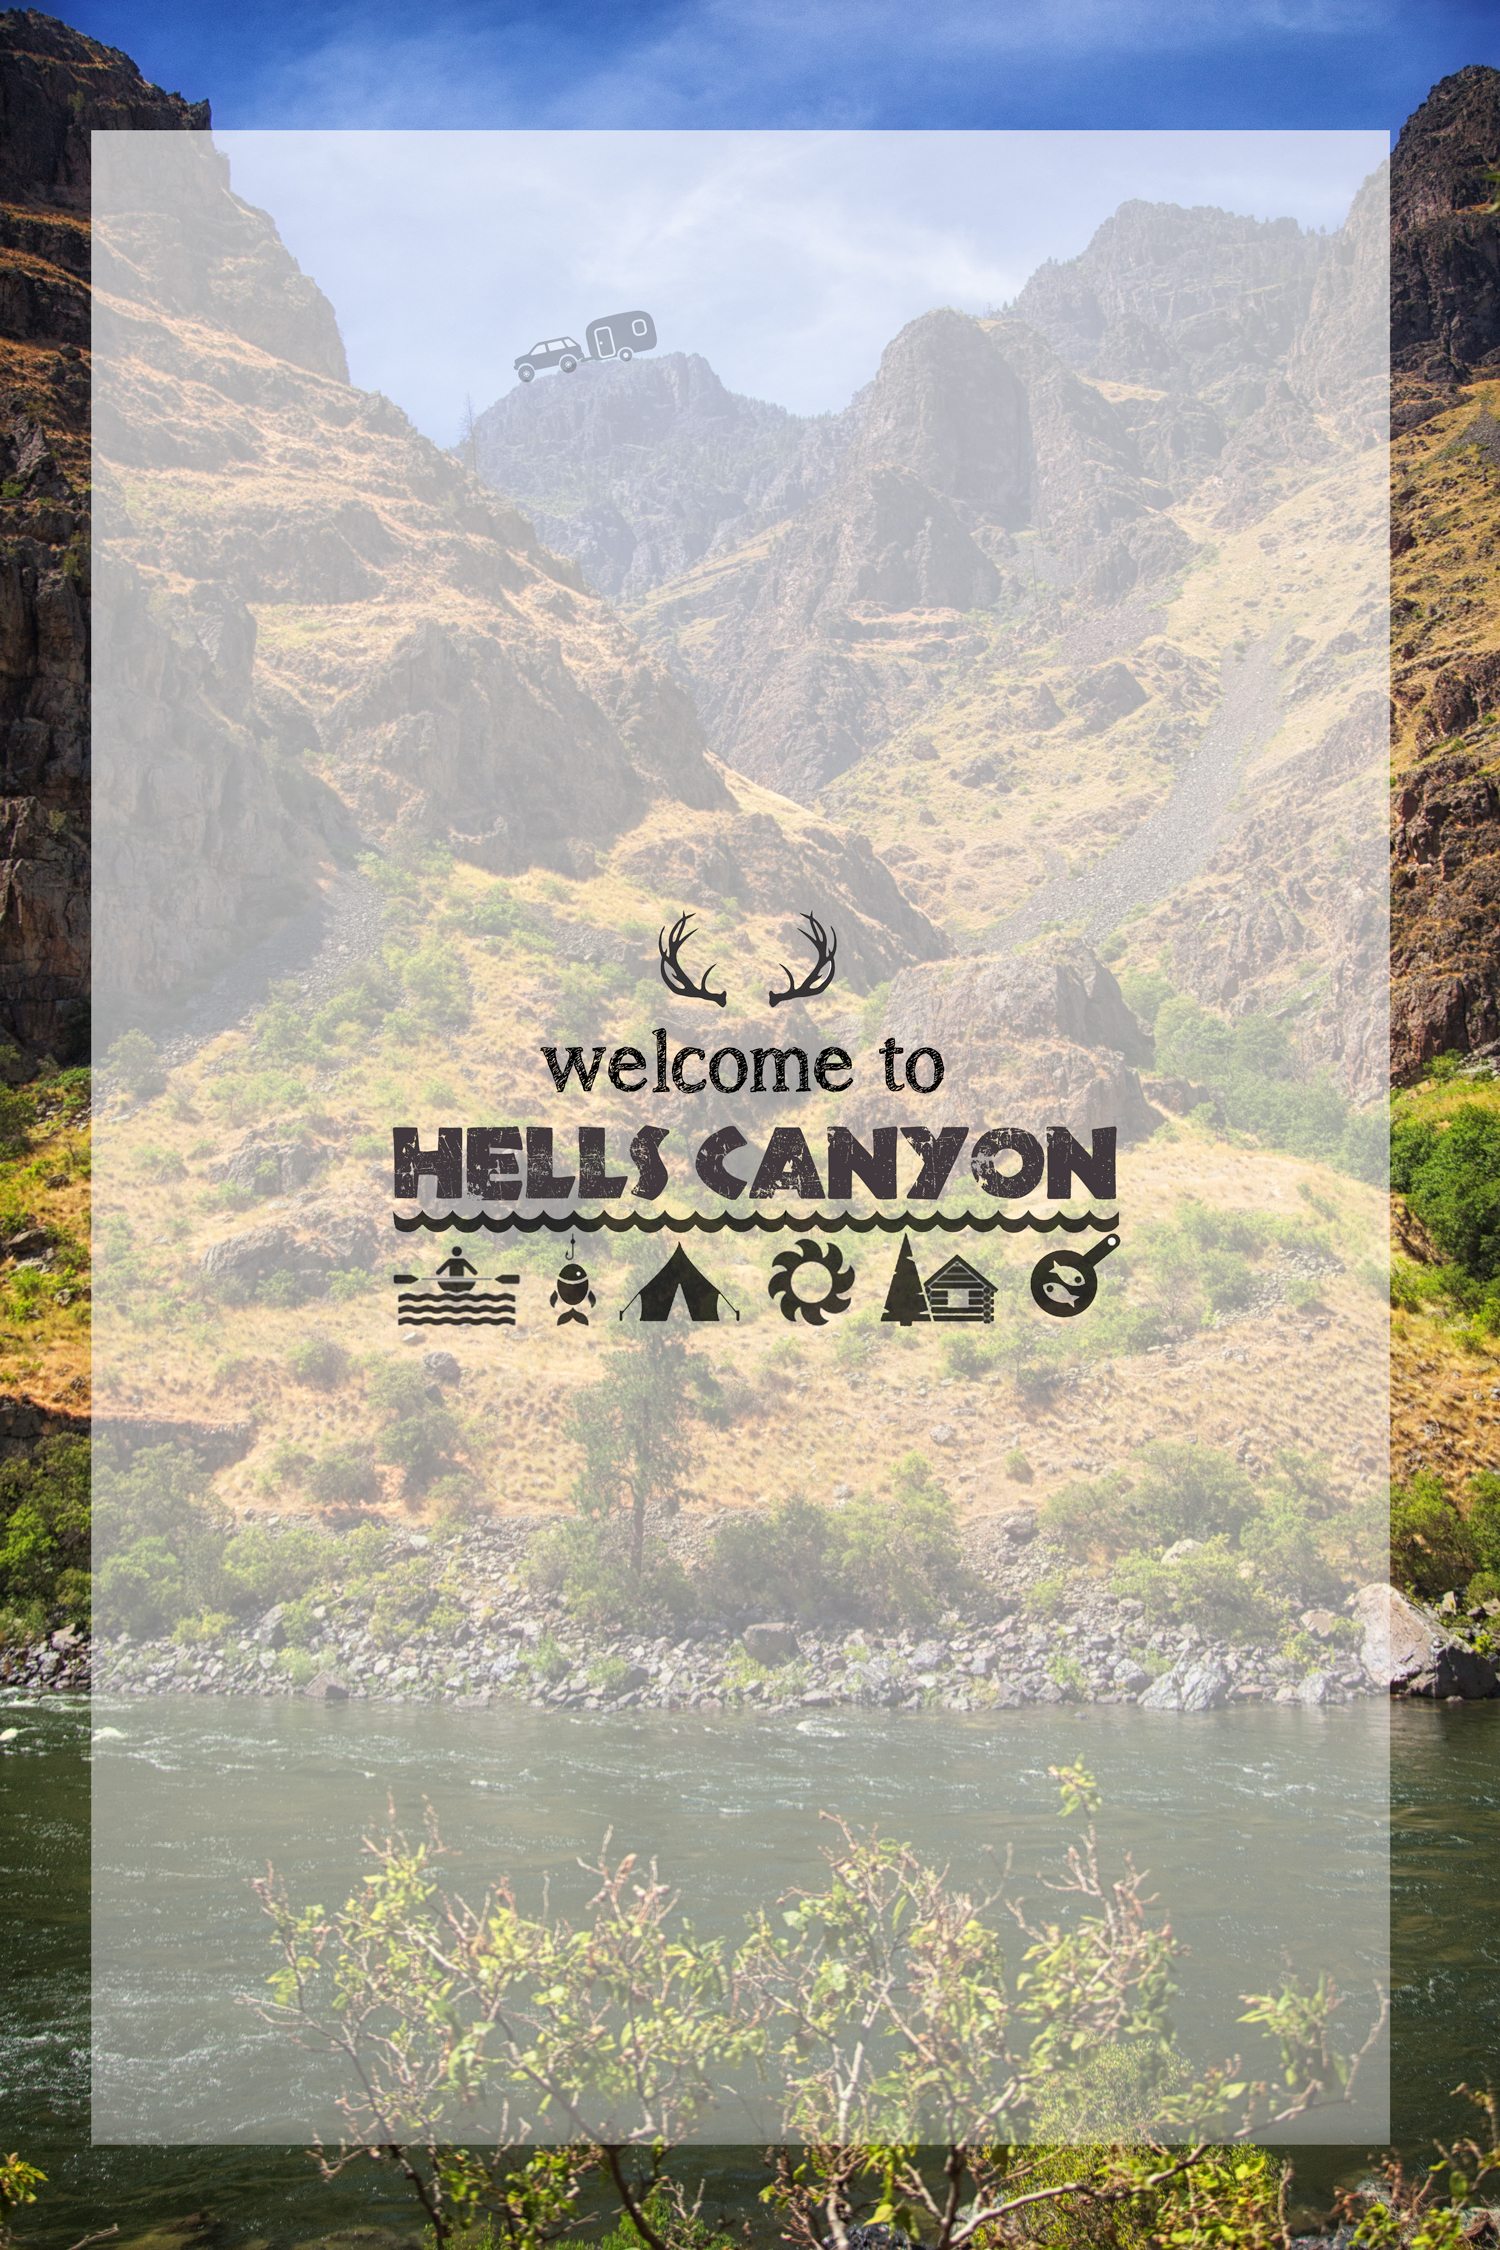 Hells Canyon Raft with Kurt and Heidi Armacost via J5MM.com